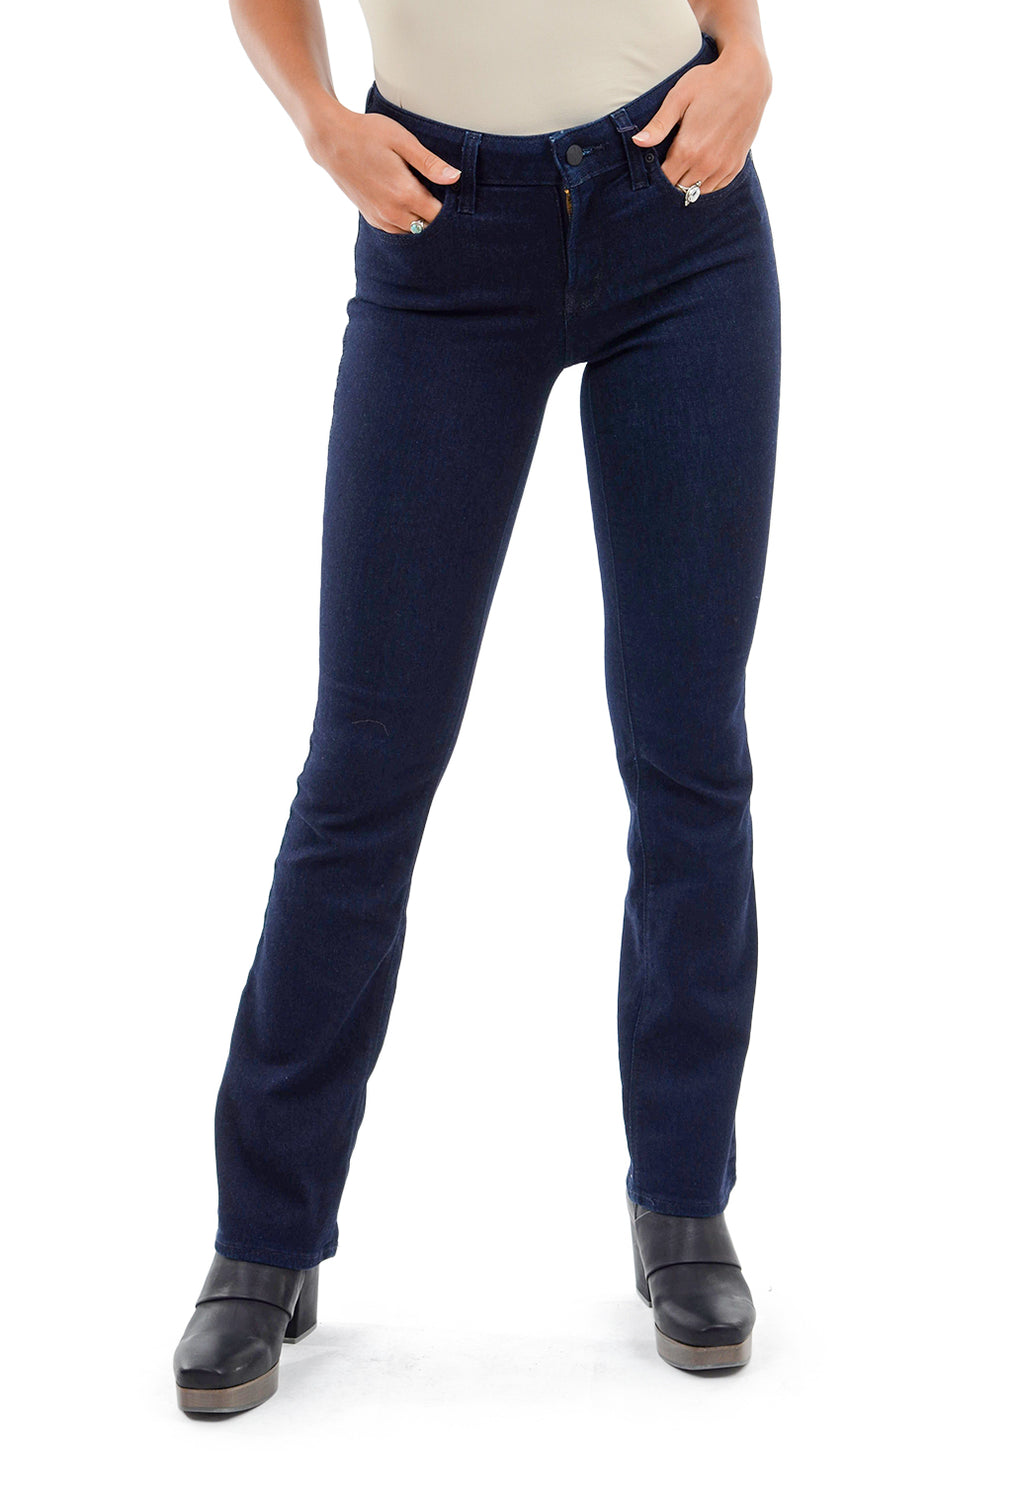 NYDJ Billie Mini Bootcut Jeans, Dark Blue Rinse